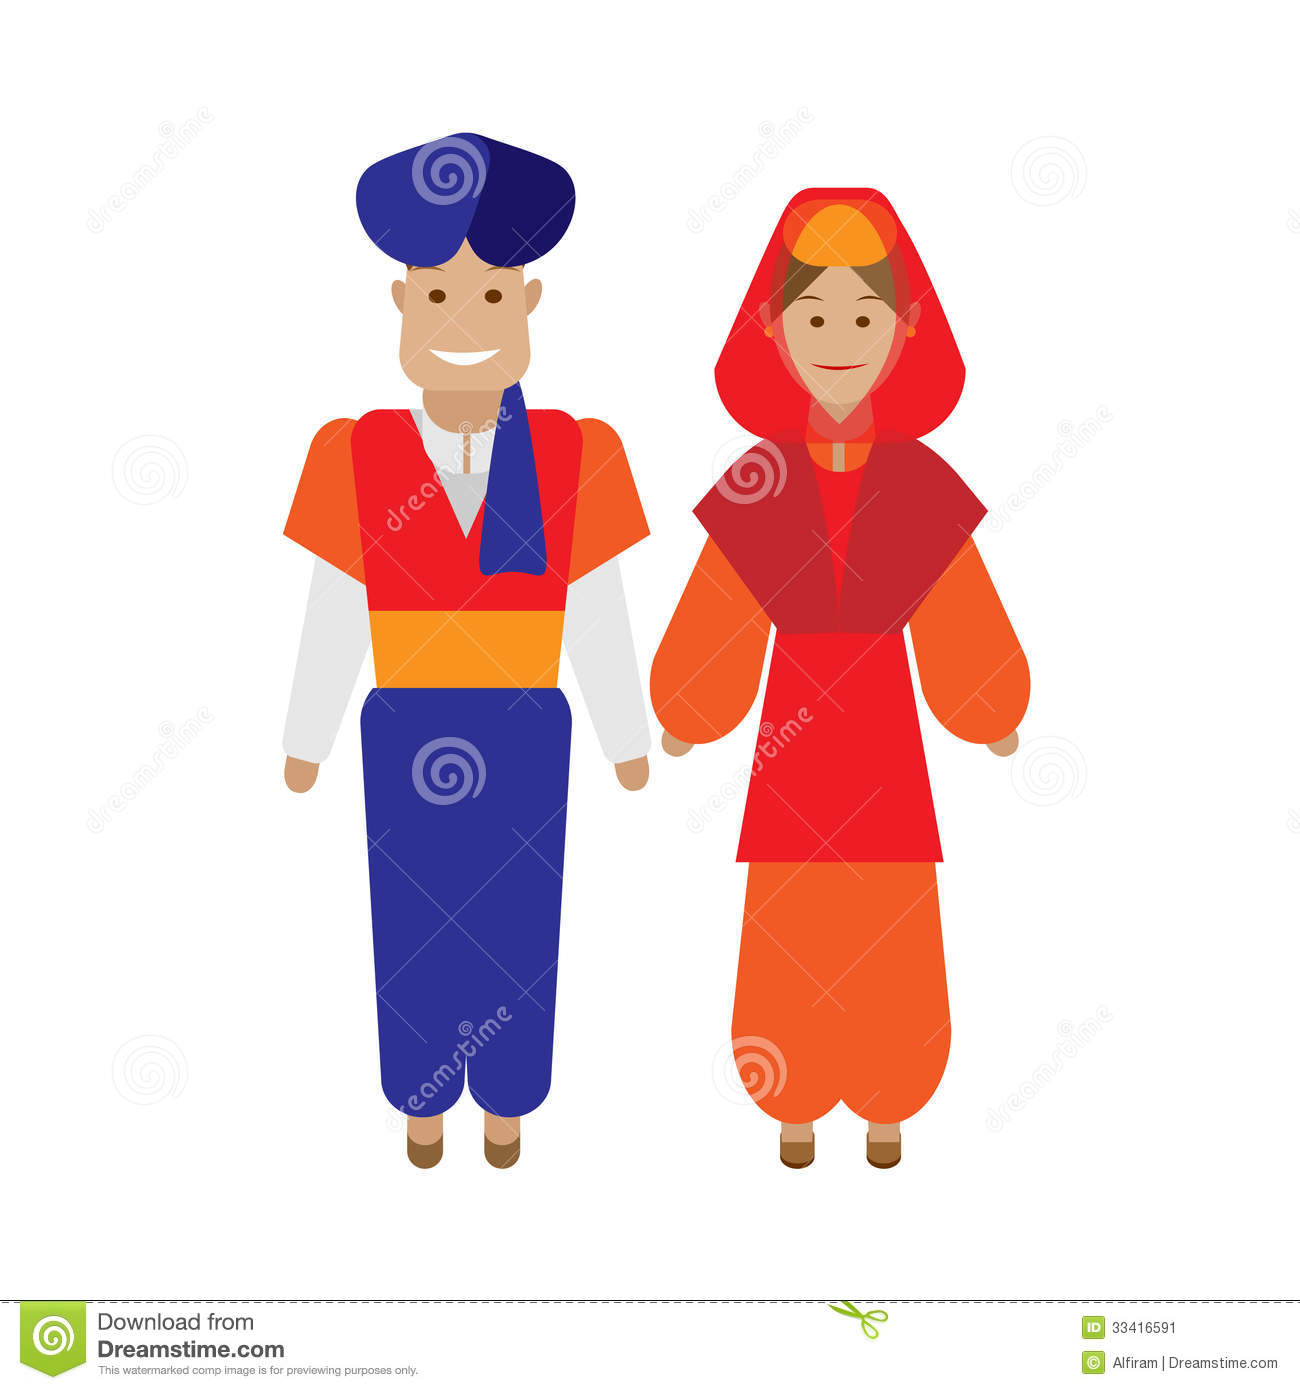 Traditional clipart graphic download Traditional Turkish Attire Clipart graphic download